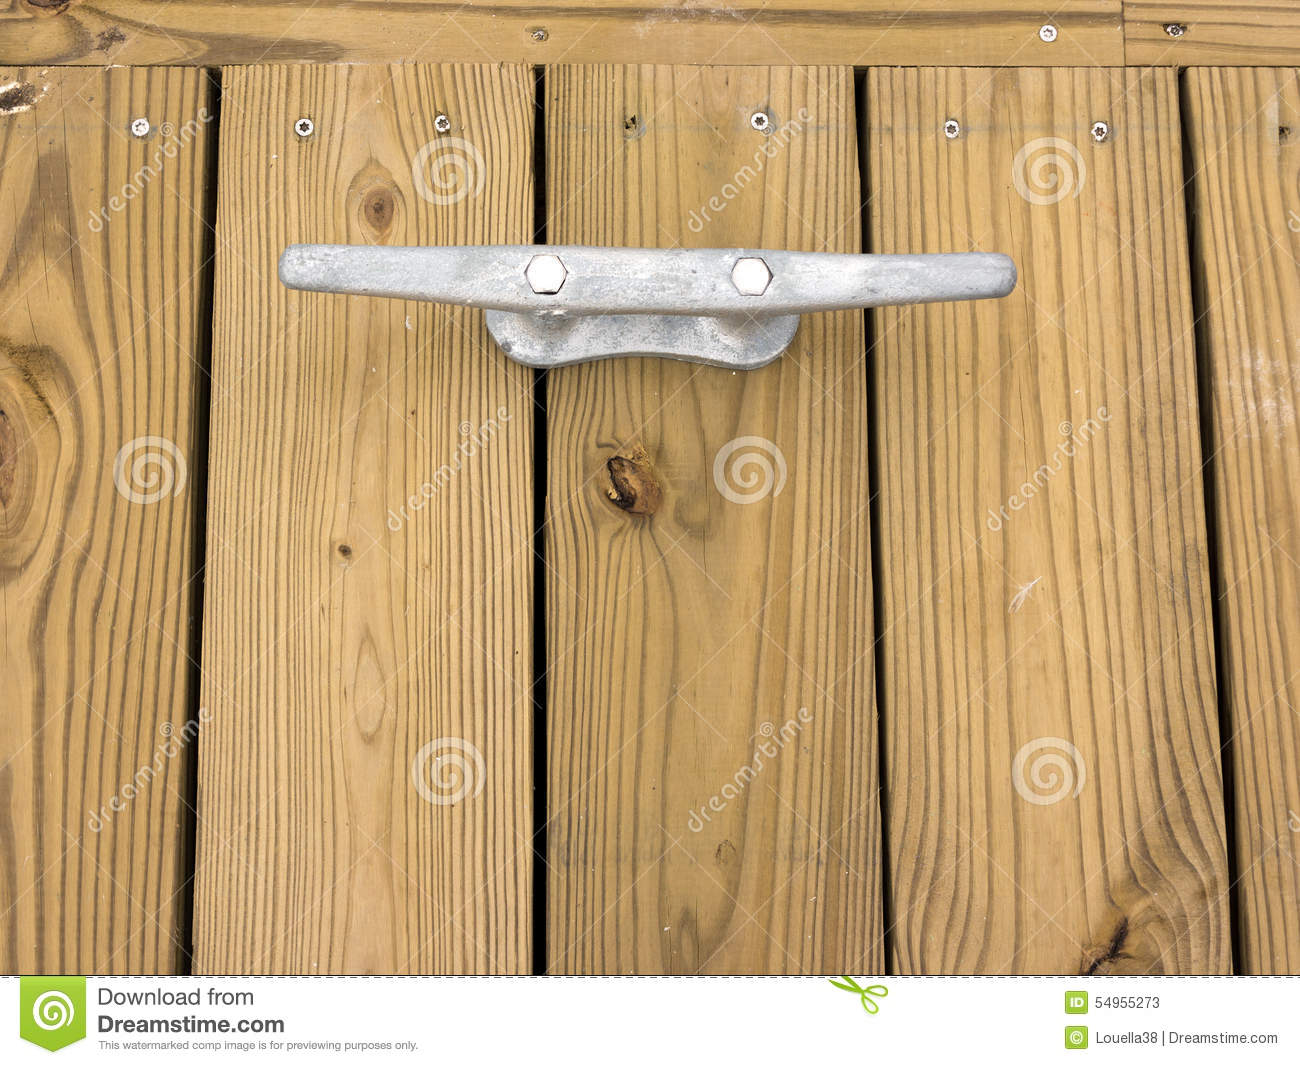 Pressure Treated Decking With Dock Cleat Stock Image - Image